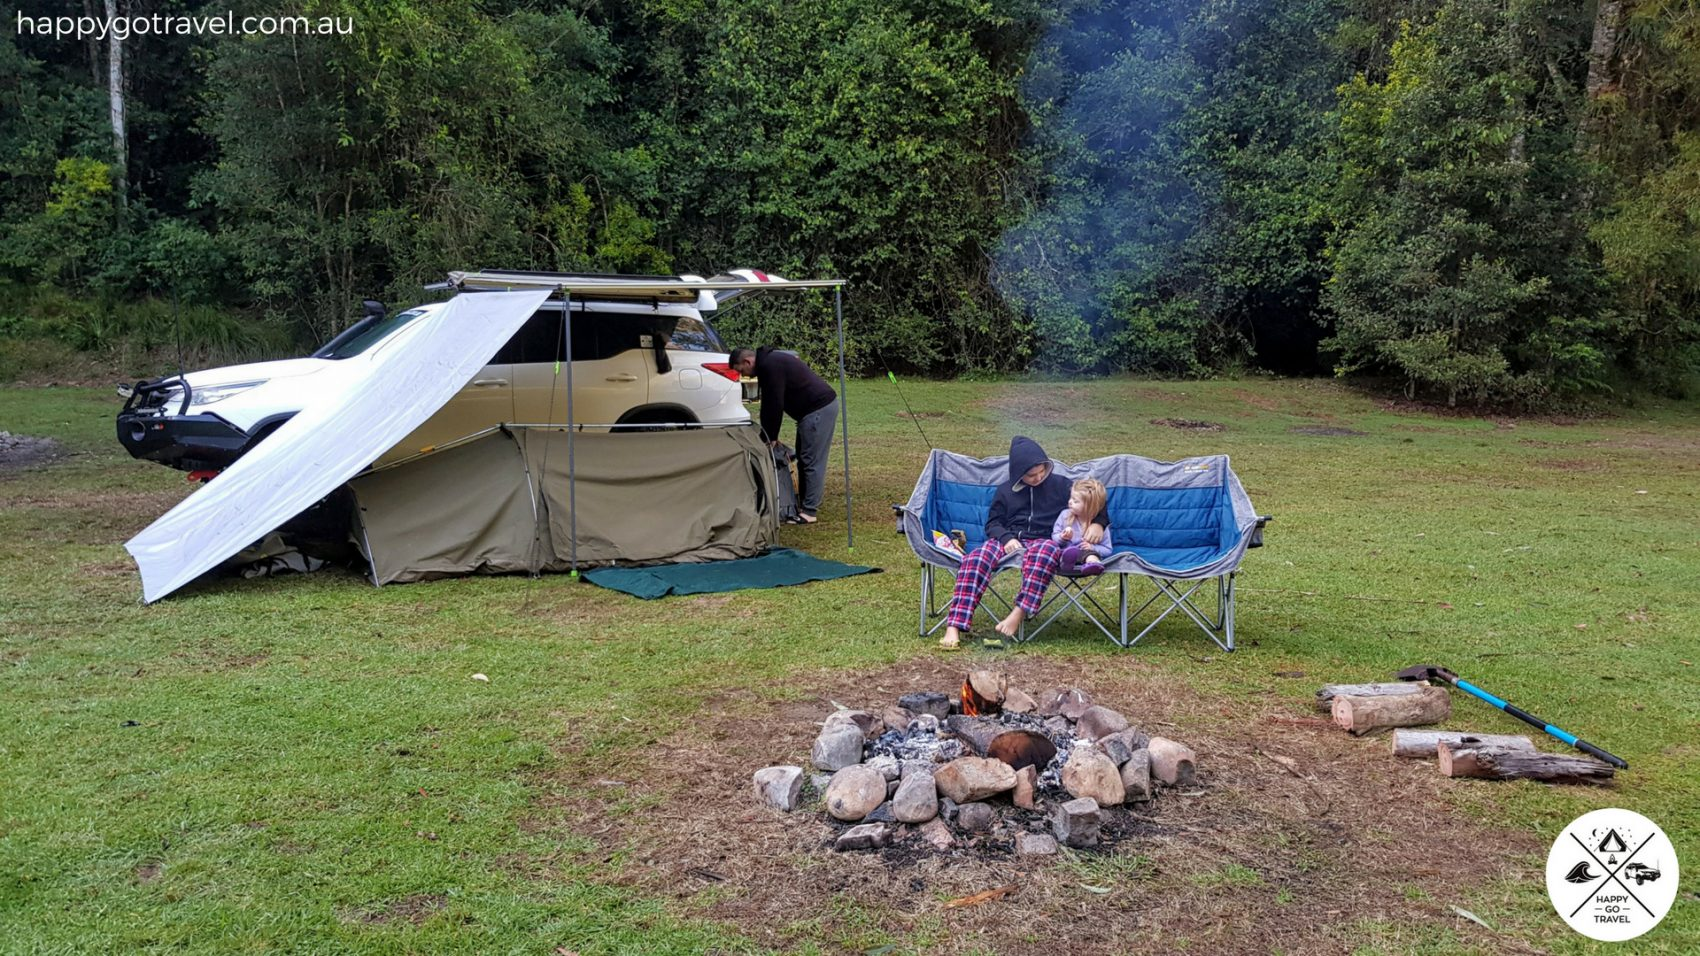 camping at Chichester State Forest with swags